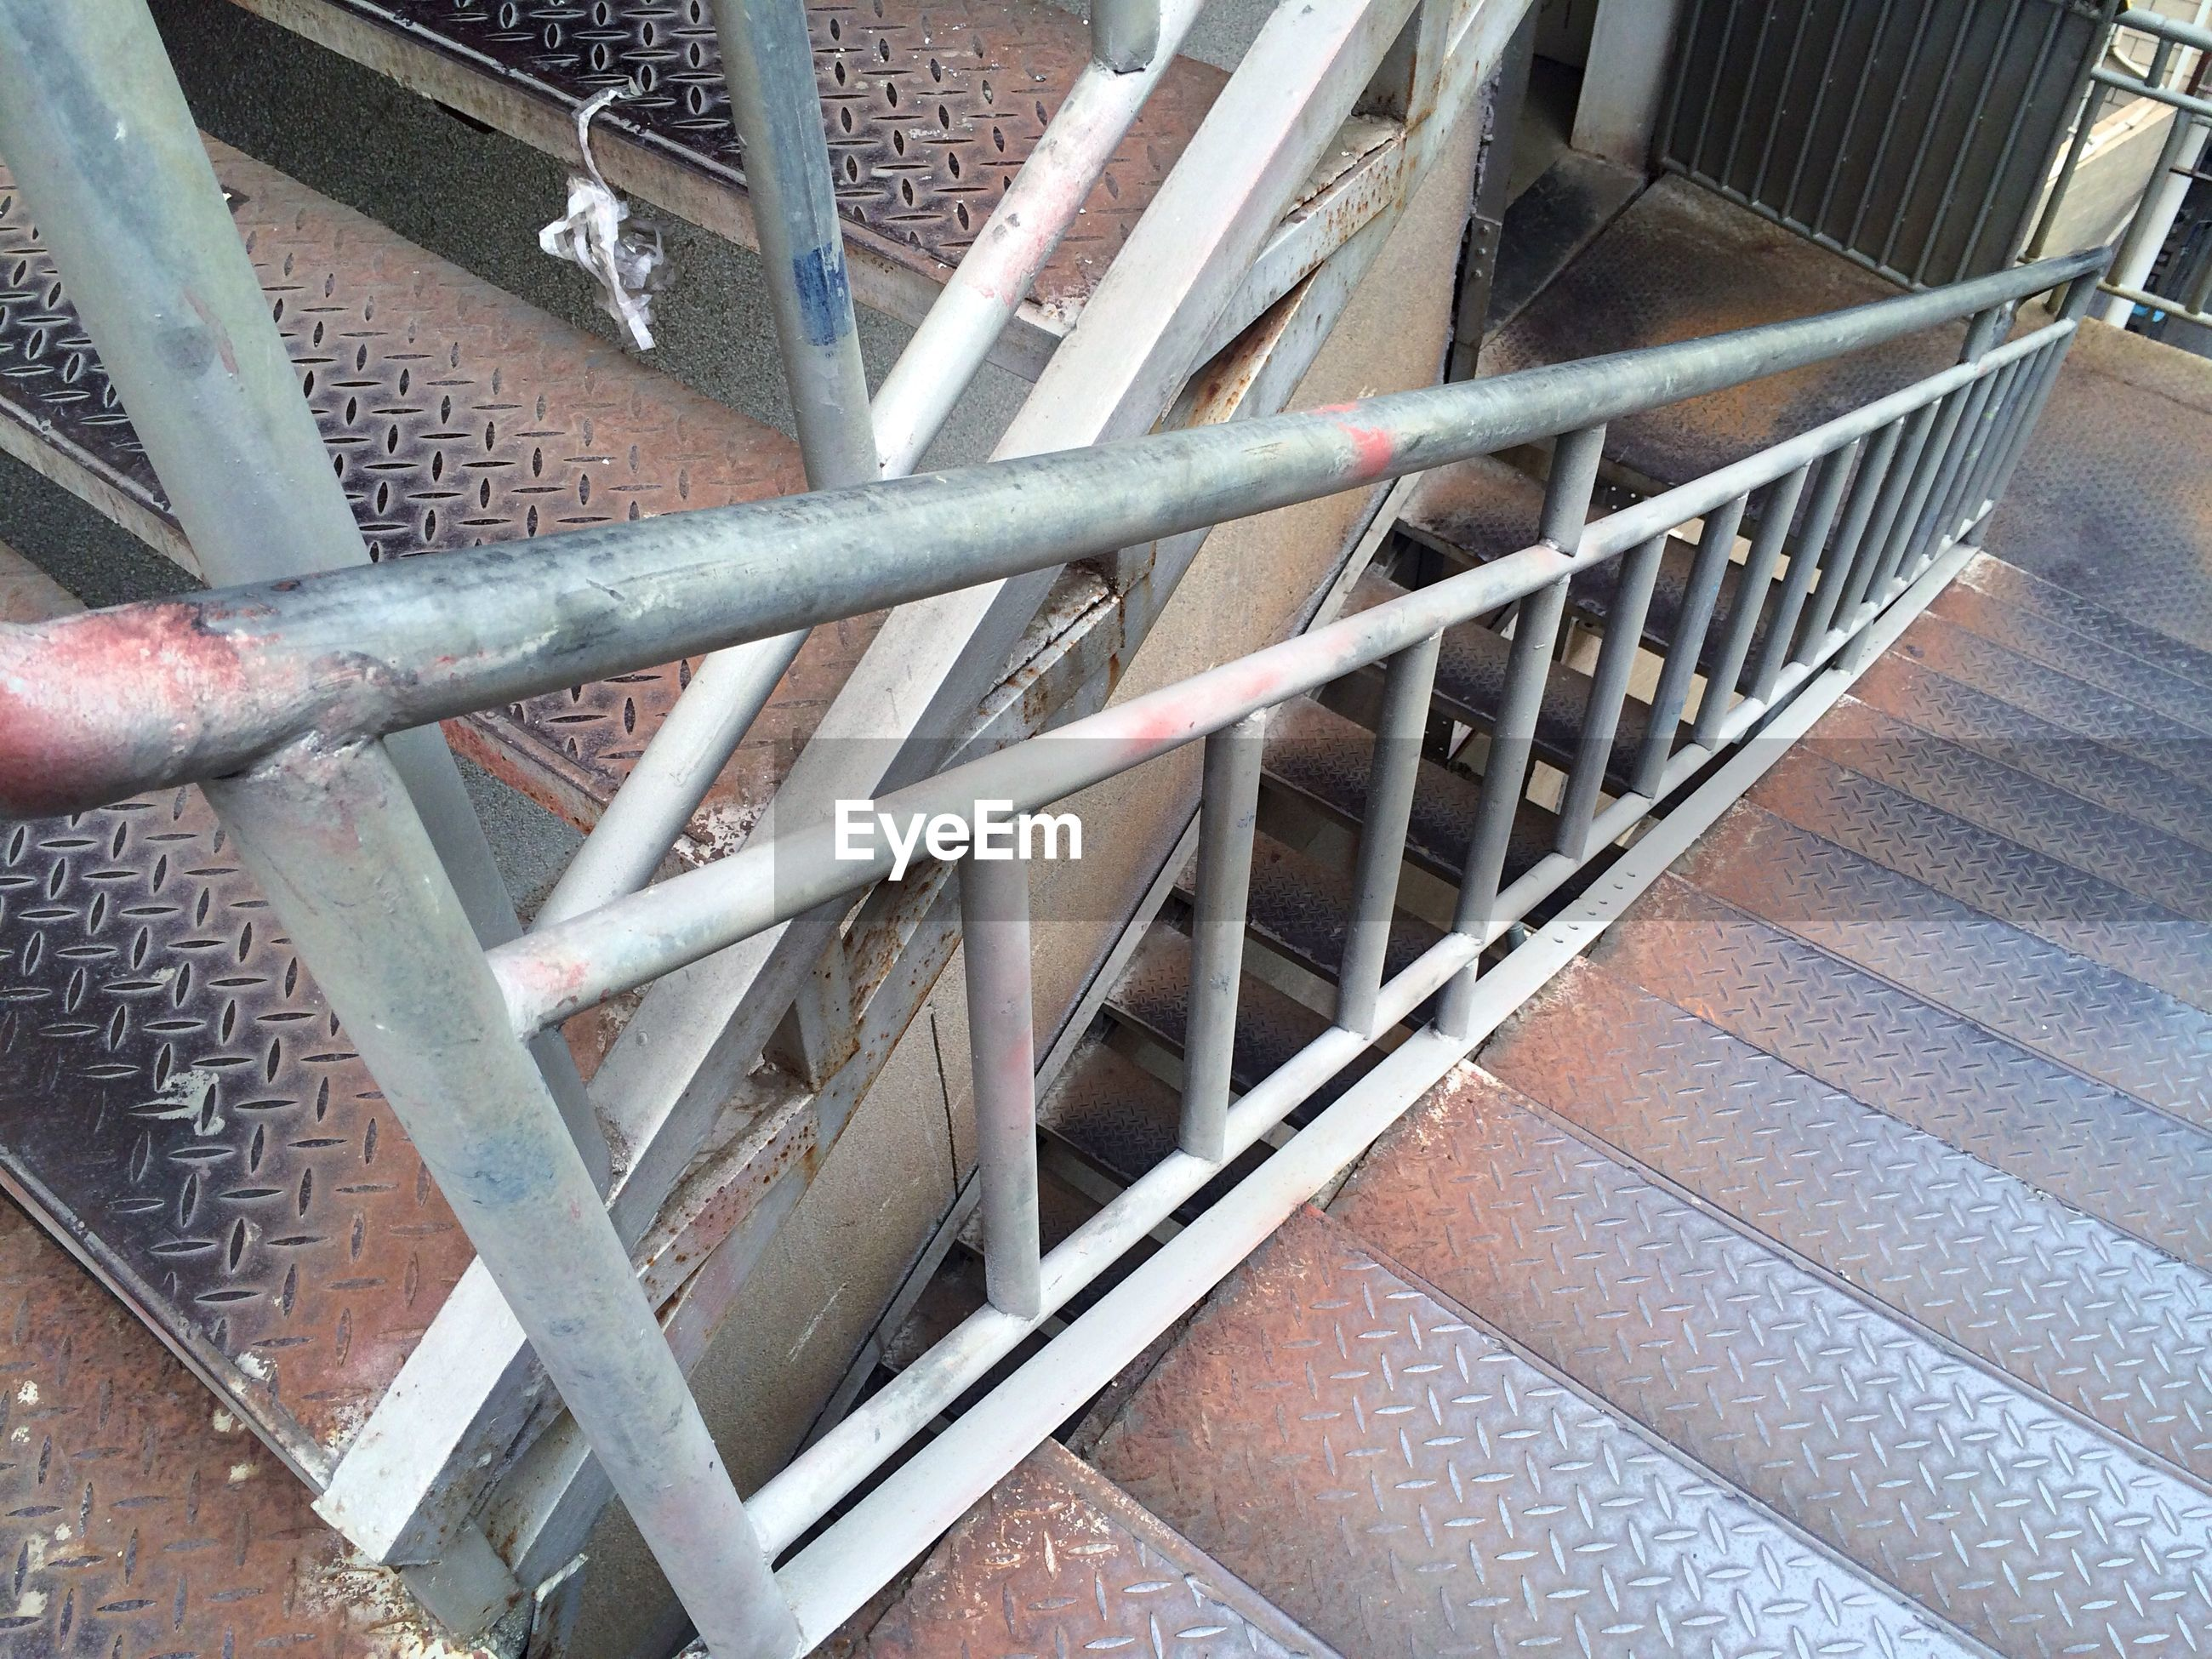 metal, indoors, built structure, architecture, pattern, metallic, railing, steps and staircases, staircase, steps, high angle view, low angle view, full frame, day, no people, repetition, backgrounds, ceiling, roof, building exterior